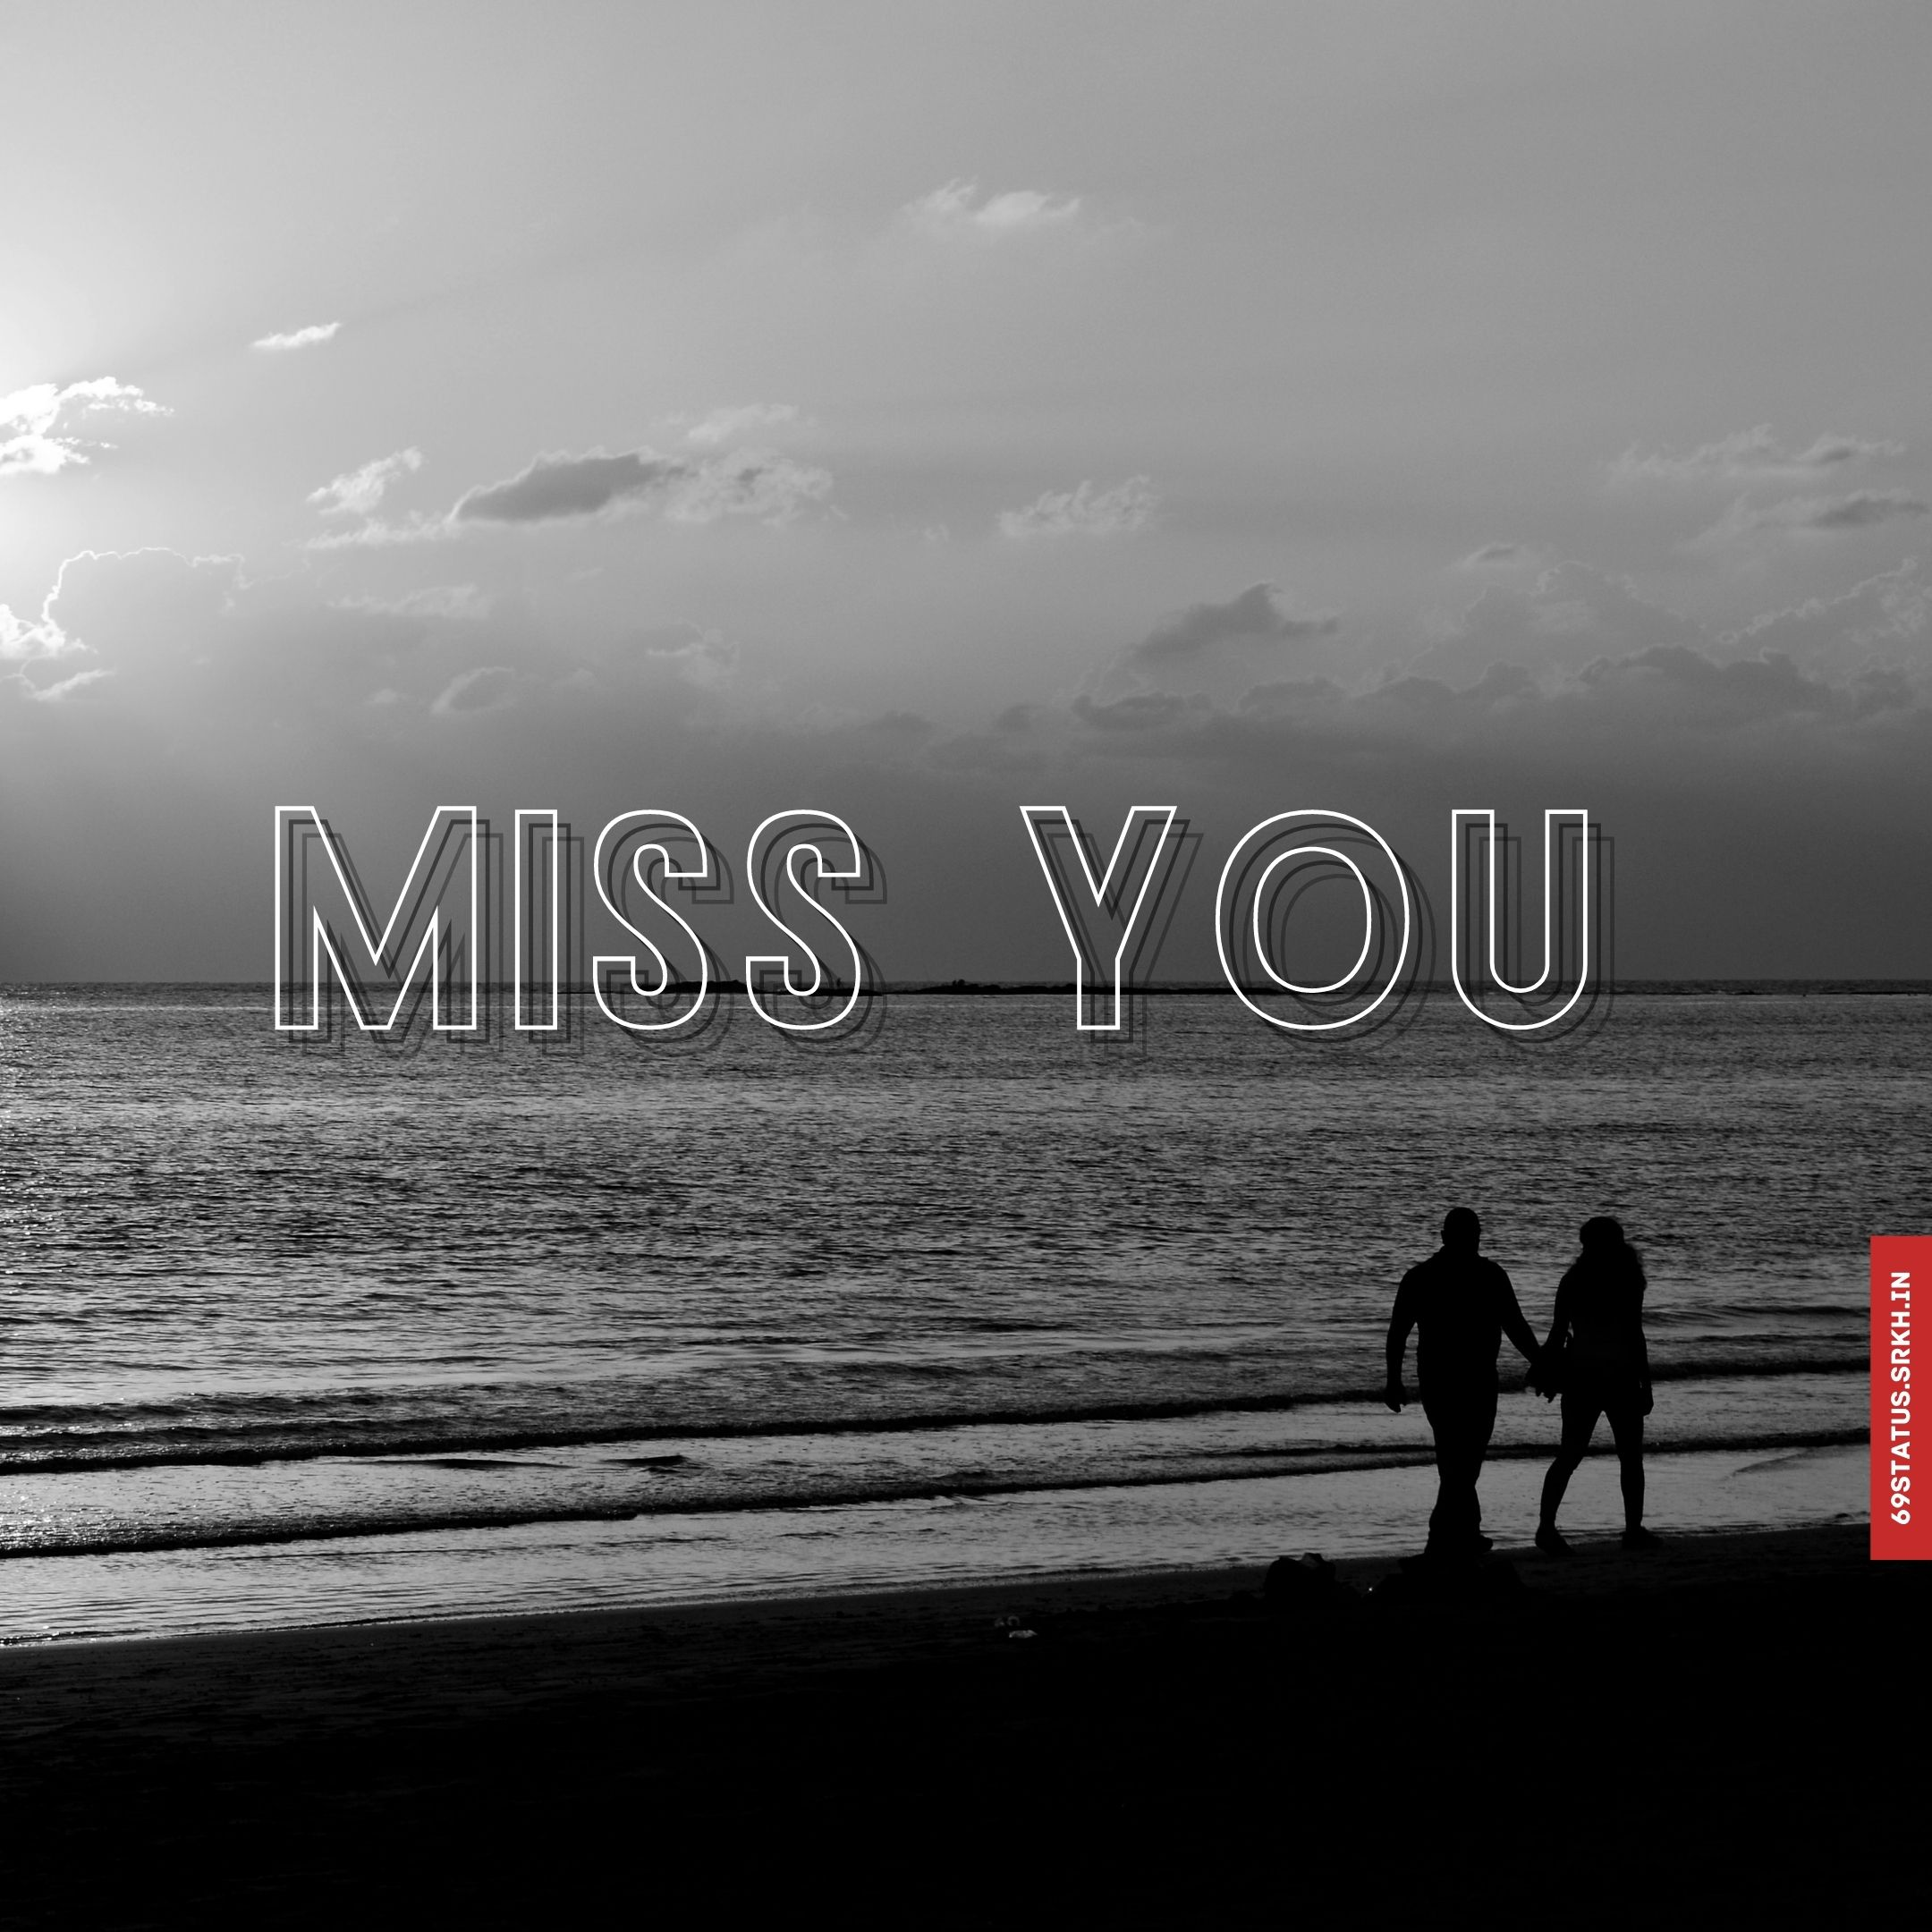 Miss you images love full HD free download.